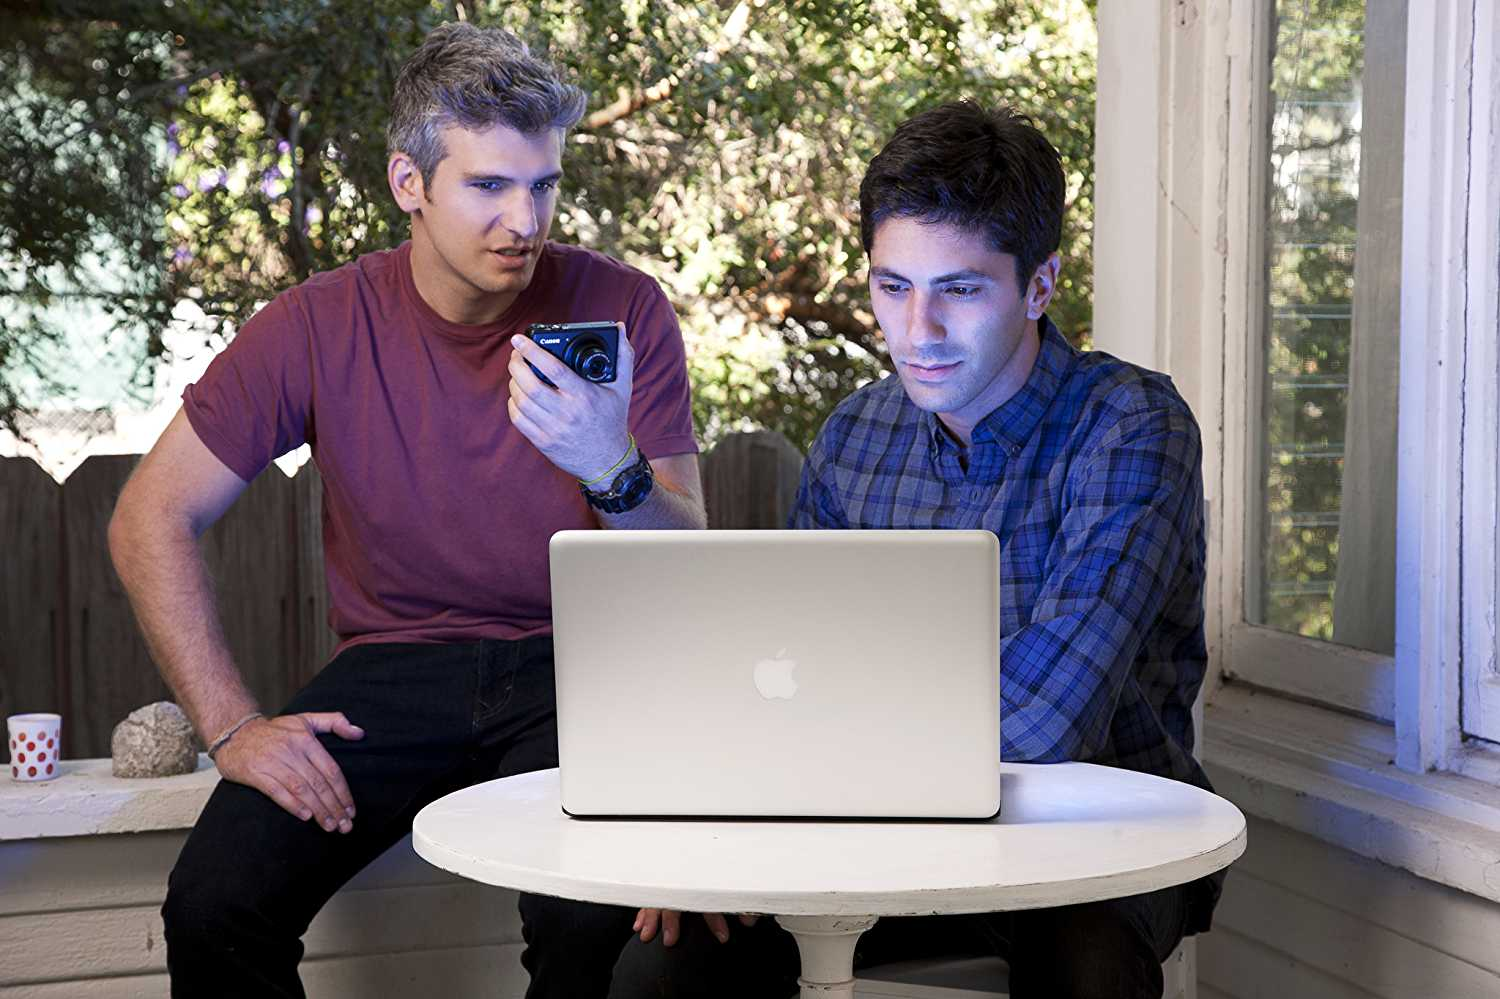 Schulman and Joseph help people to speculate their relationships online. (IMDb)